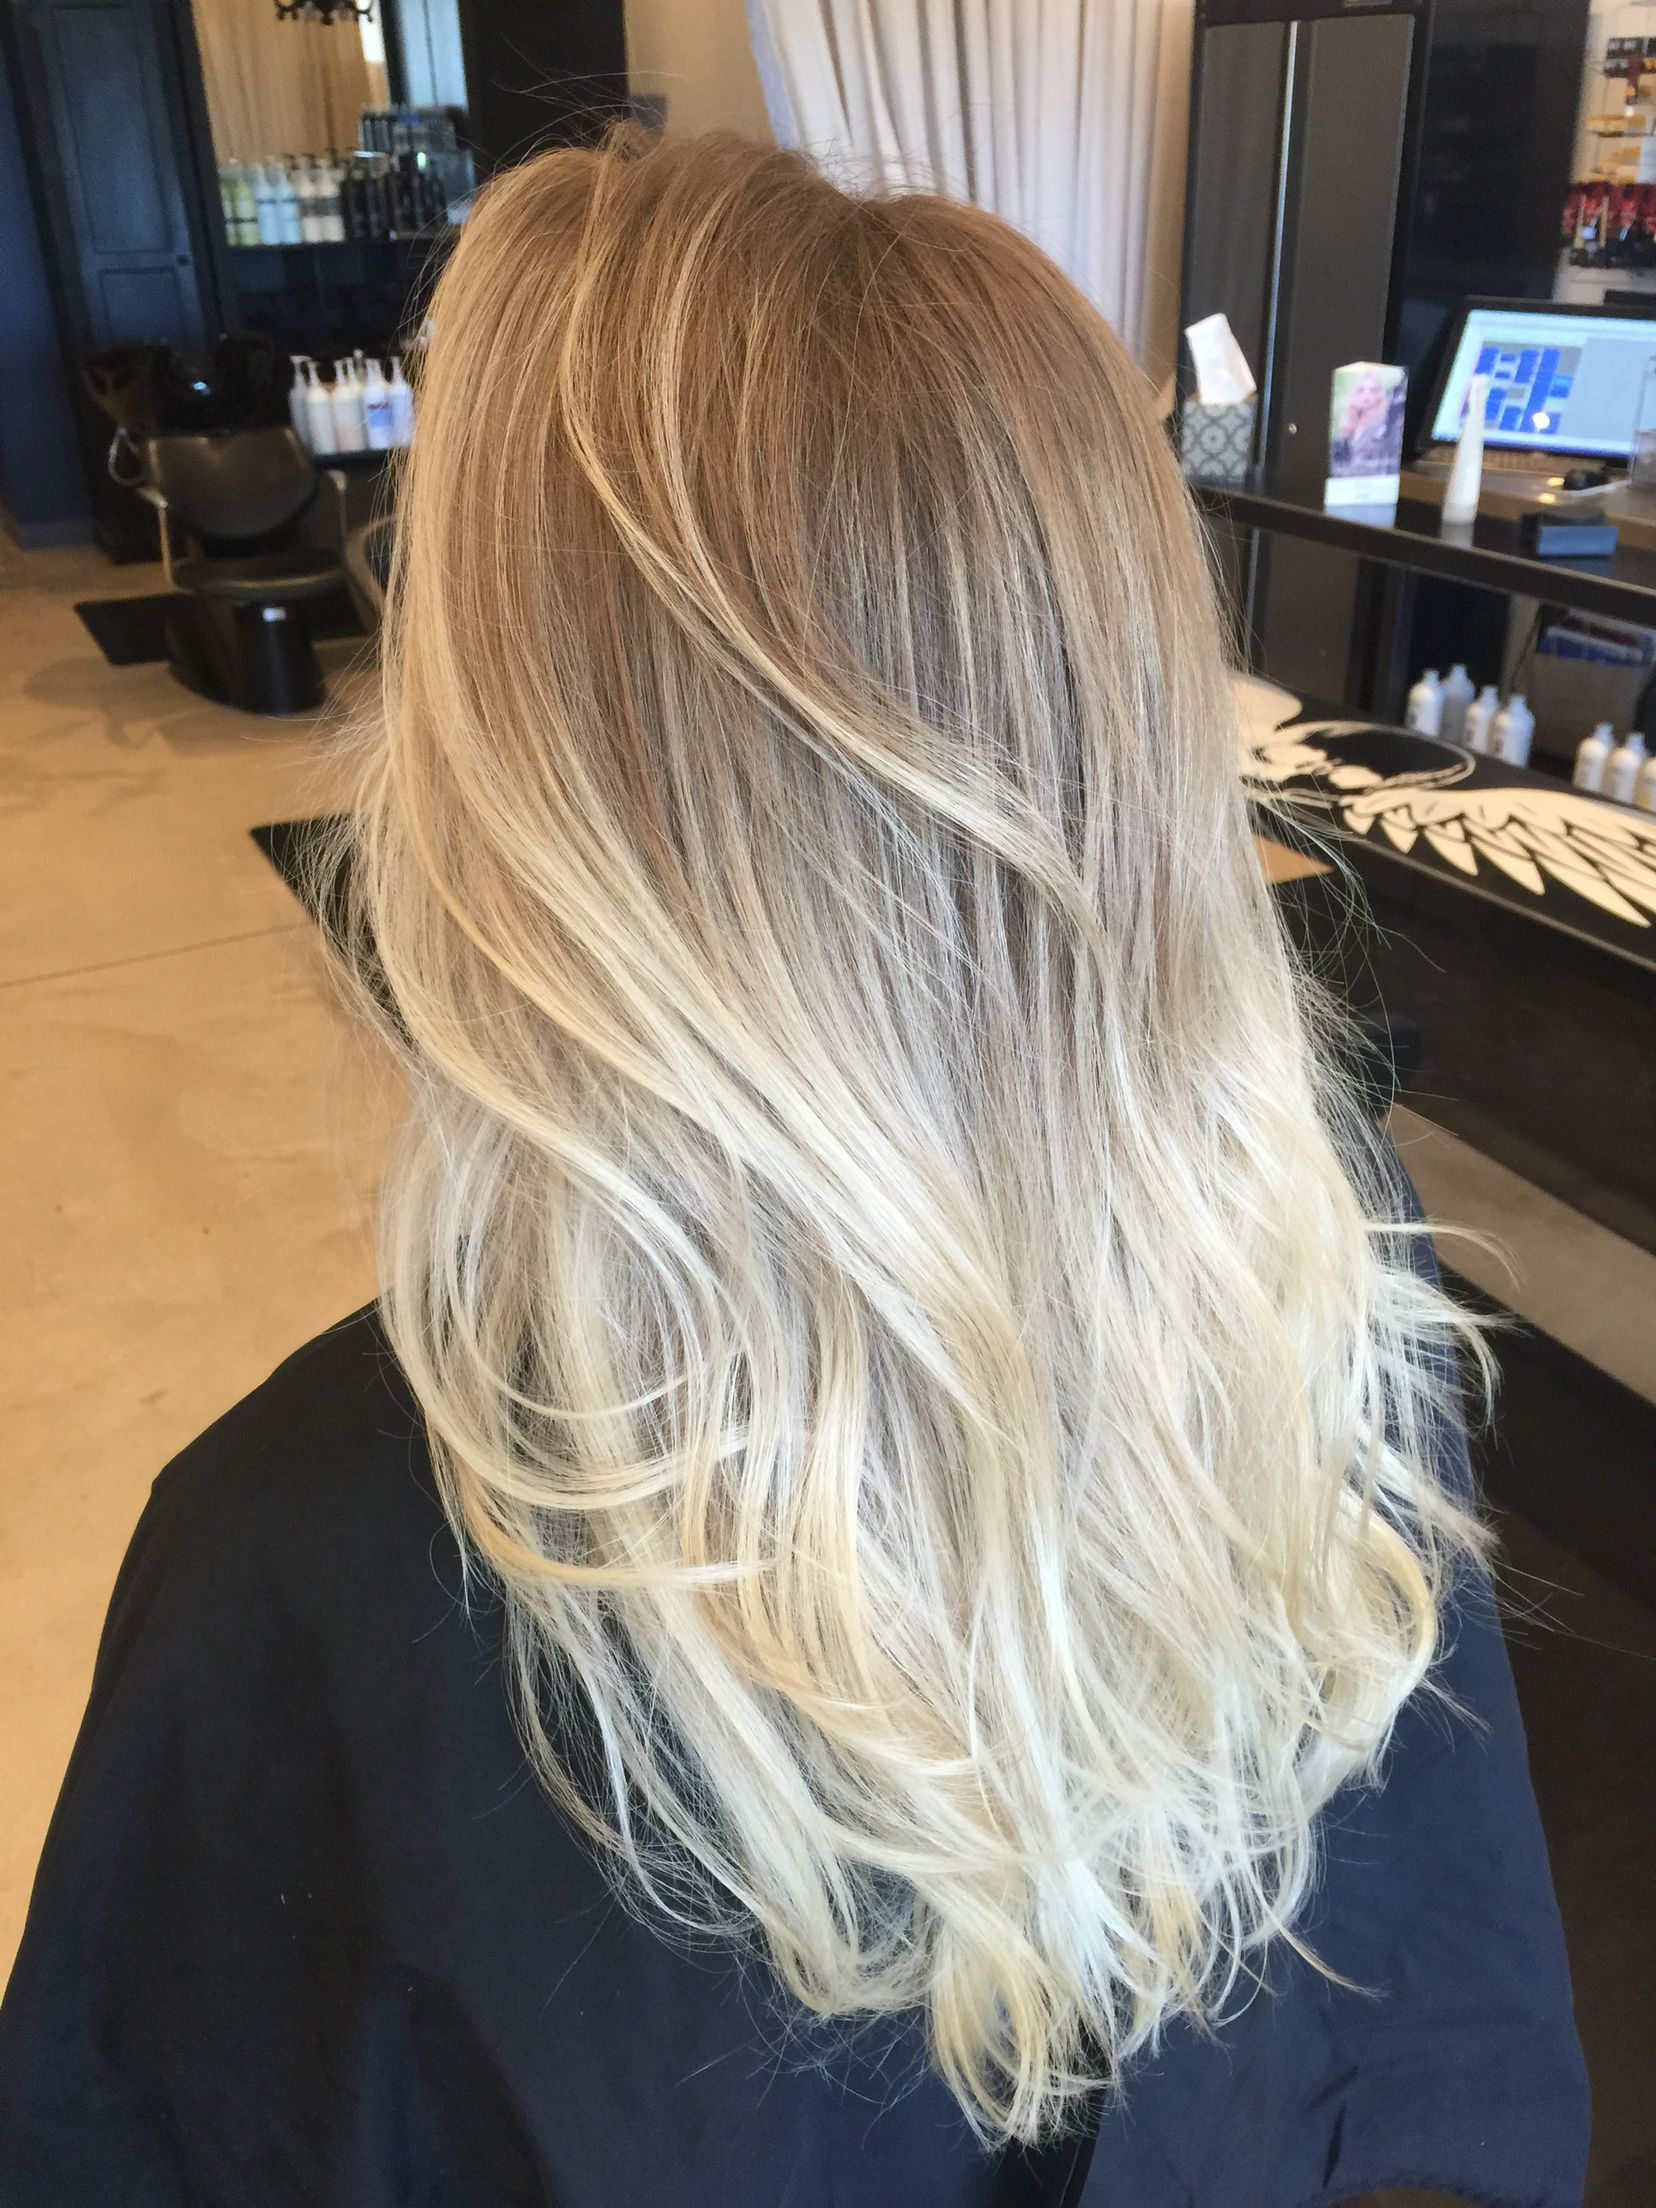 Pin by Dana Scarff on Hair Pinterest